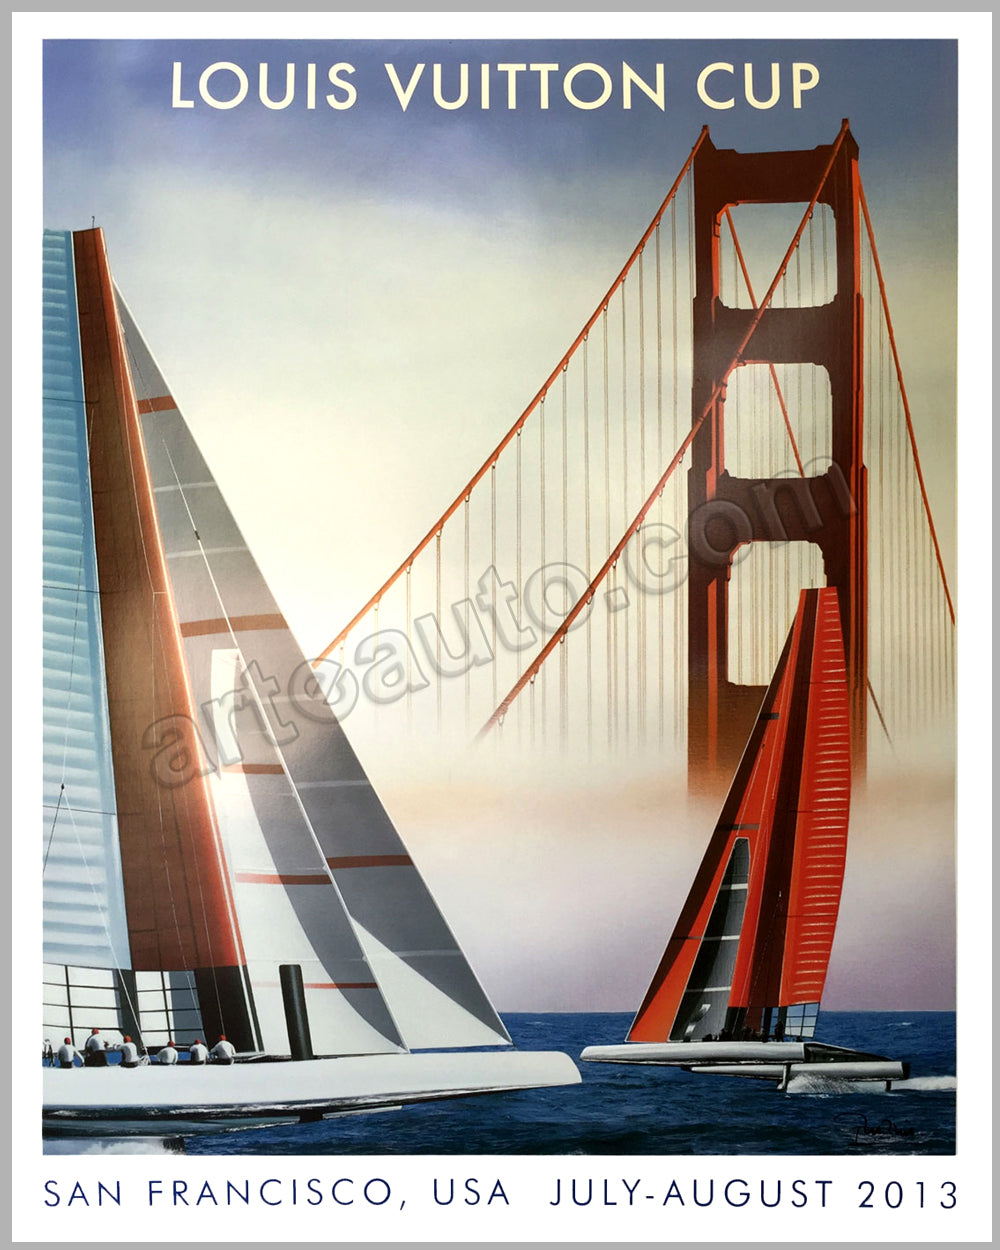 Louis Vuitton Cup, San Francisco, 2013 poster by Razzia